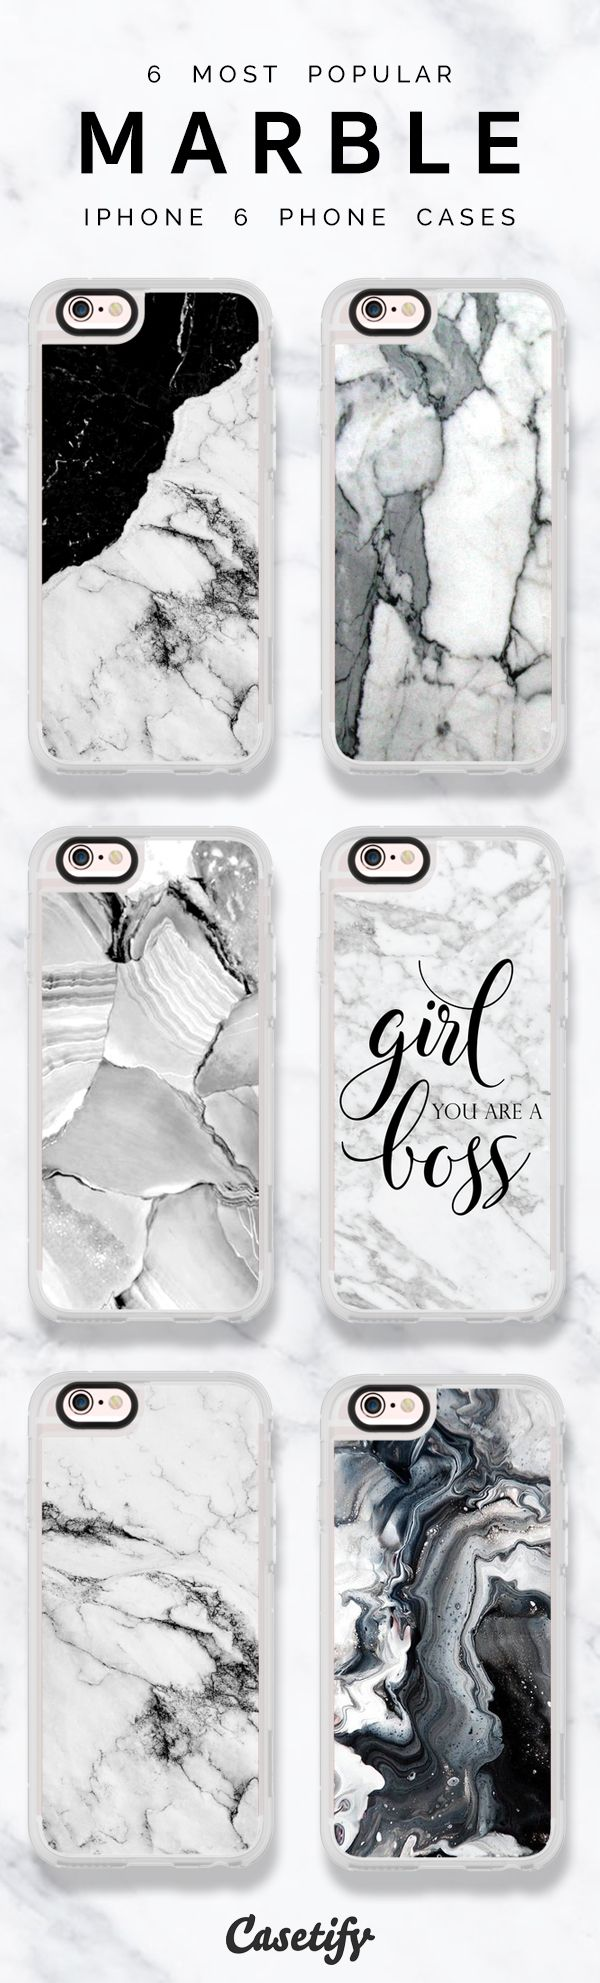 6 most popular marble iPhone 6 protective phone case designs | Click through to see more iPhone phone case ideas >>> https://www.casetify.com/artworks/UmppbTnGaX | @casetify